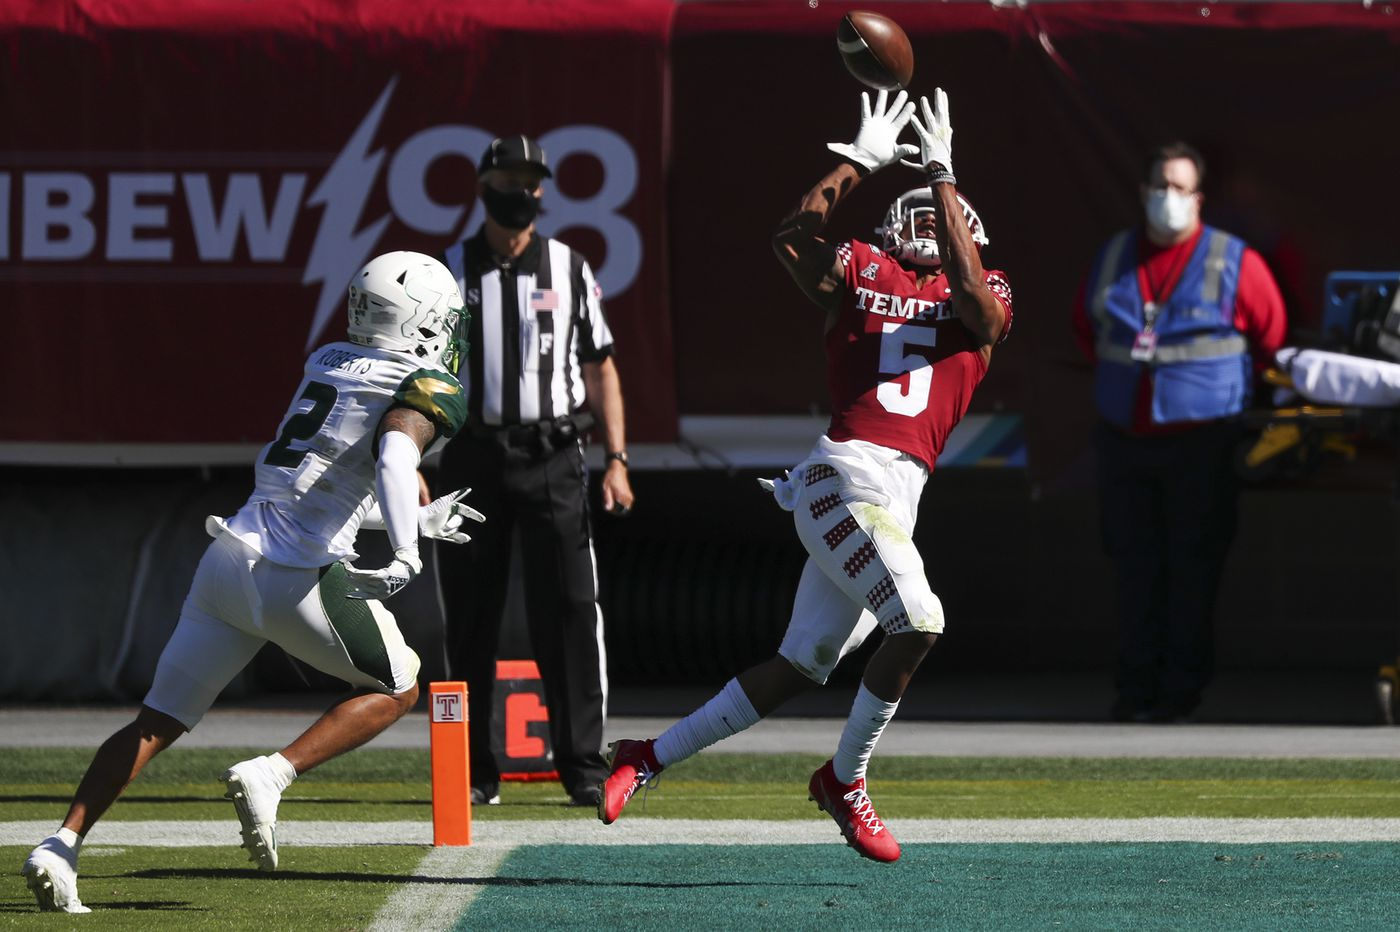 Temple beats South Florida, 39-37, on a late two-point conversion stop